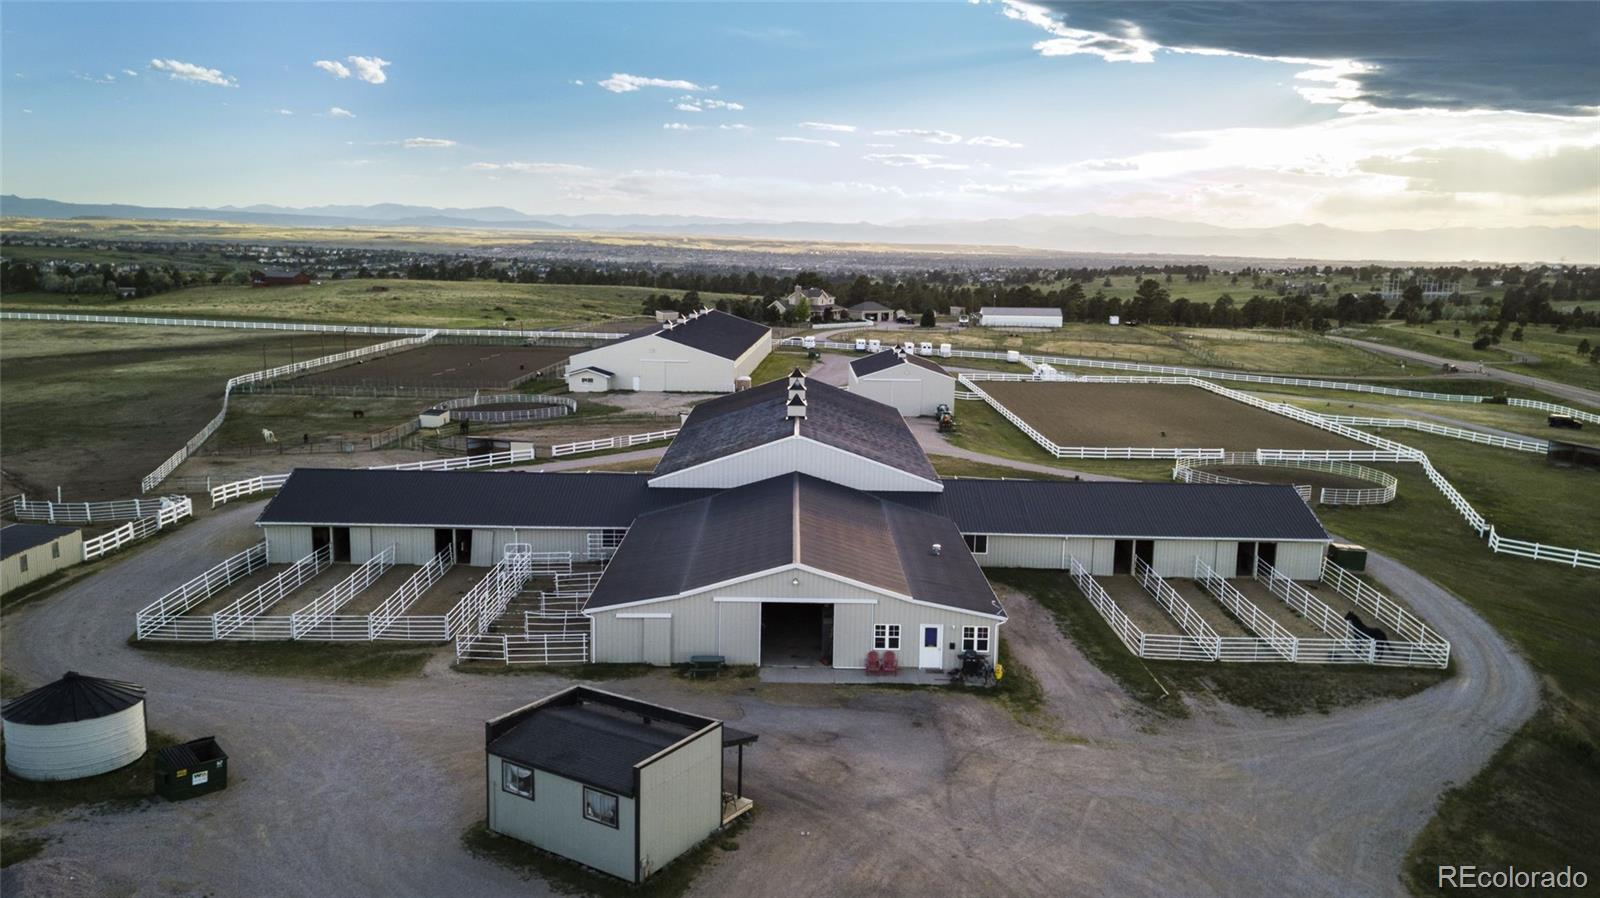 One of a kind!  41 Acres in the heart of Parker Colorado with high income potential! Country living at its finest, 3 mile drive to everything city living provides.  Over 48 thousand square feet of structures including two dustless indoor riding arenas, main barn, multiple tack rooms, 40 + stalls all including automatic heated waterers,  5000sqft. mechanic shop with Hydraulic lifts and living quarters,  pull through Hay barn with storage rooms and loft, two ranch hand living quarters, storage silo, fully fenced and so much more! Open floor plan ranch style home with walkout basement with a year round heated pool in the private back yard.Recording studio, theatre  the list goes one. Amazing mountain views  no other property in Parker compares! Perfectly nestled in the pines, this property is any horse lovers dream come true! Contact Listing Agent for further information and coordinating site visit.